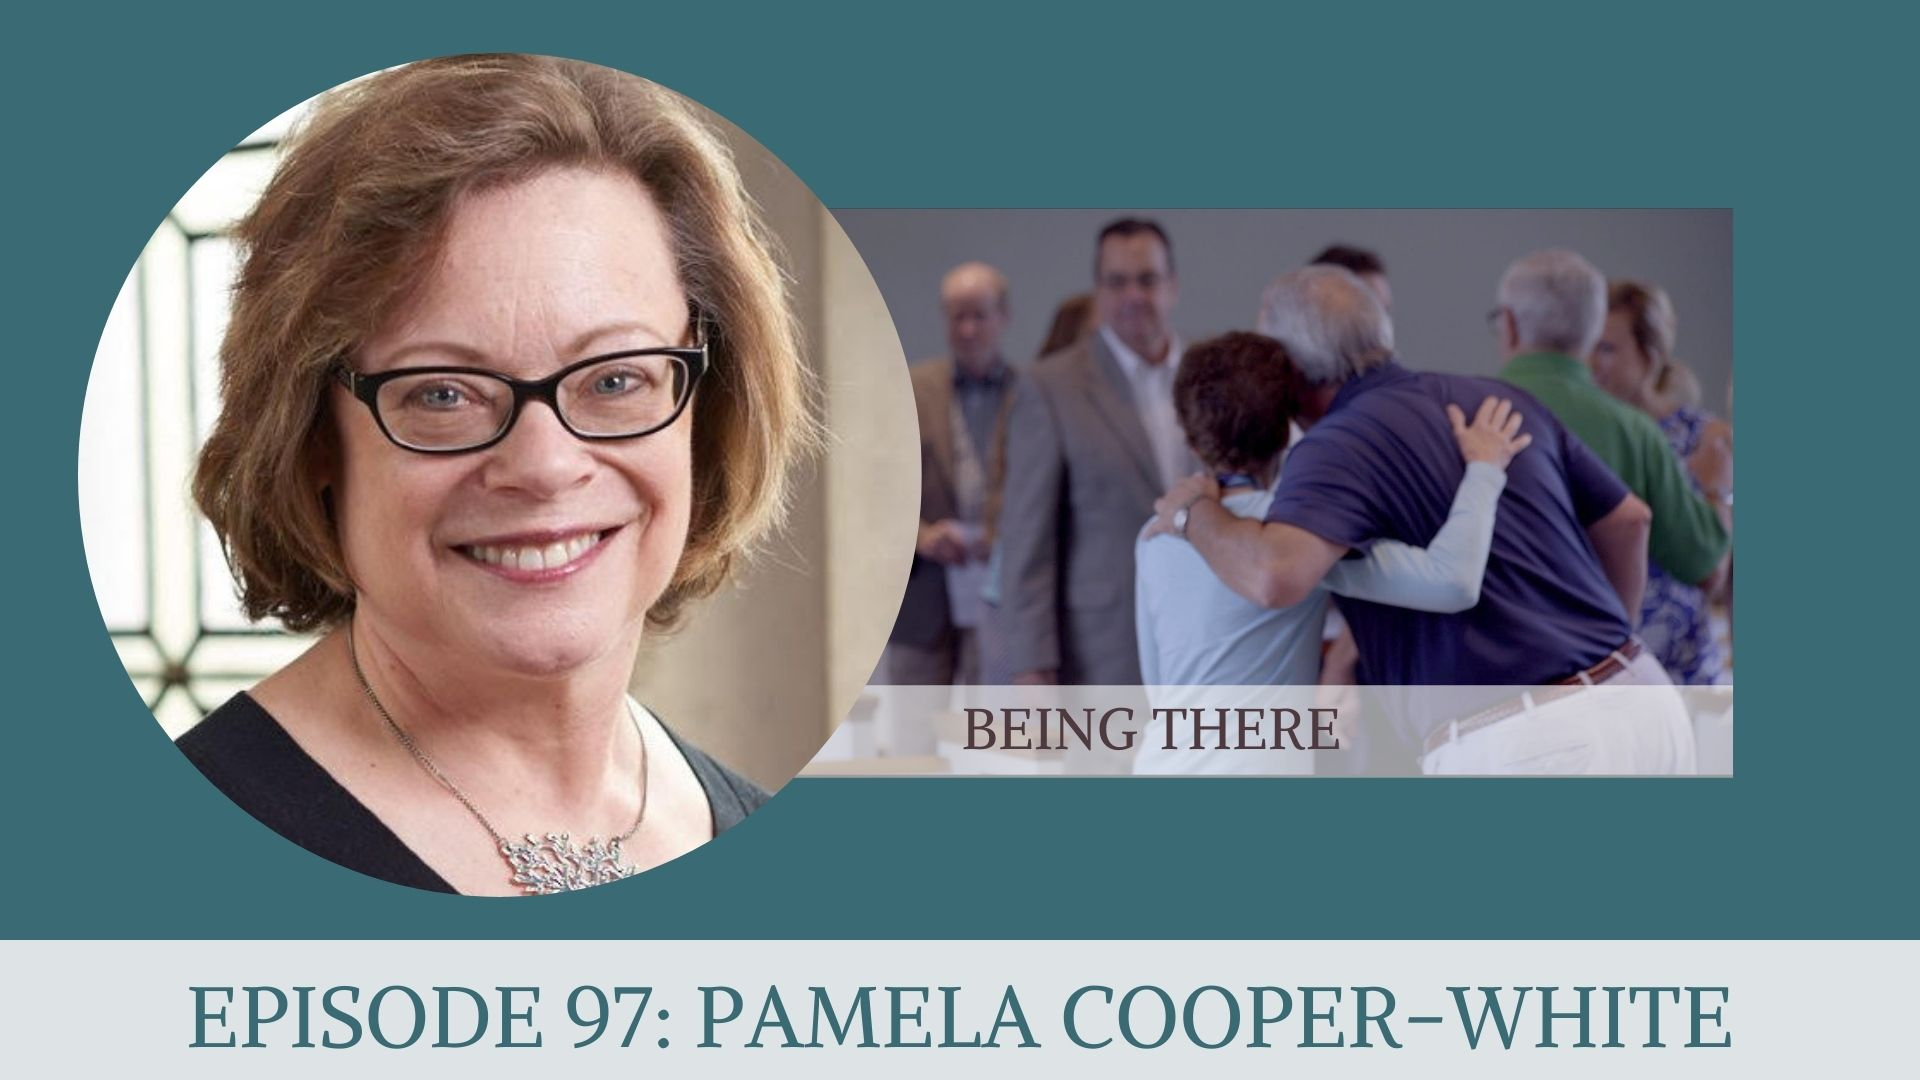 Episode 97 Pam Cooper-White